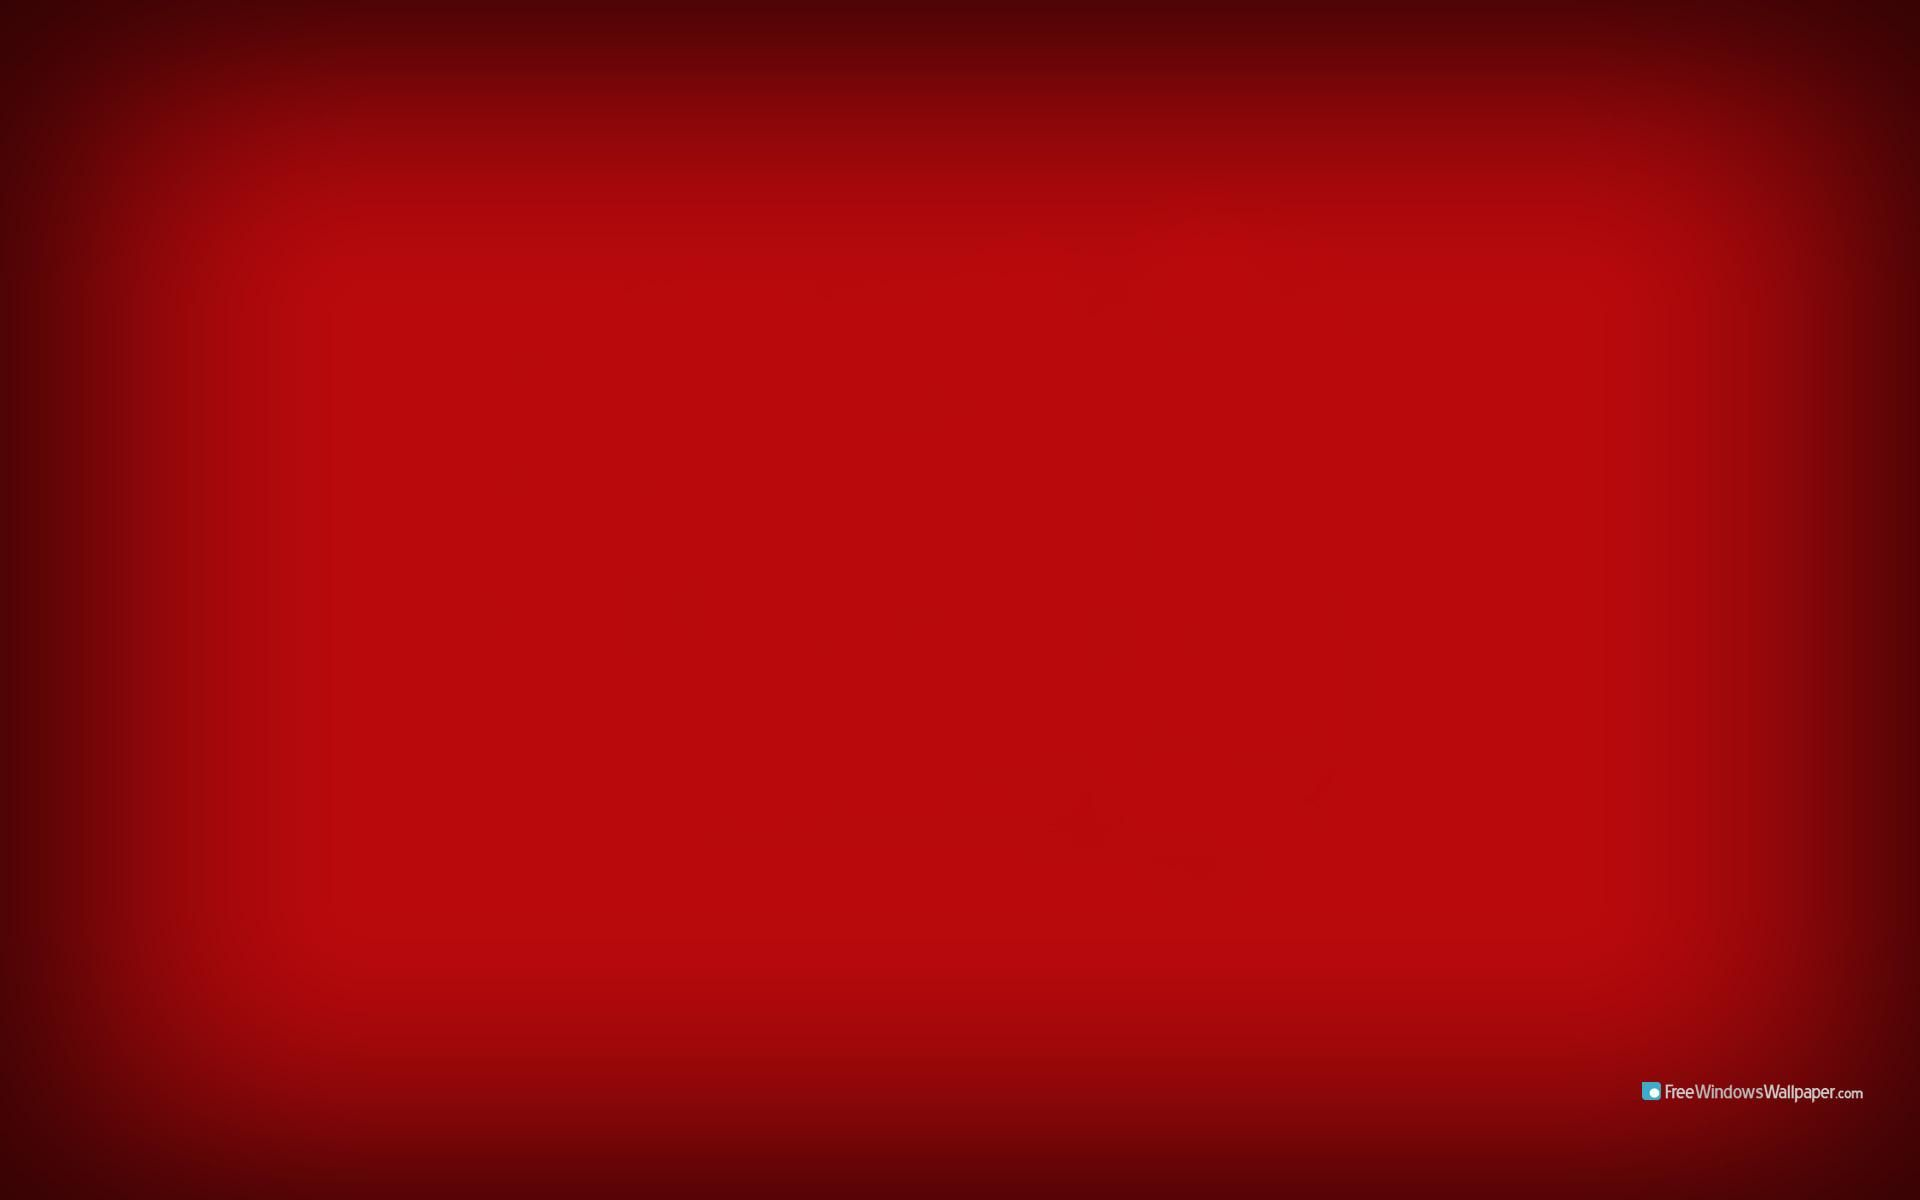 dark red color background dark red wallpaper red background desktop wallpaper dark red color background dark red